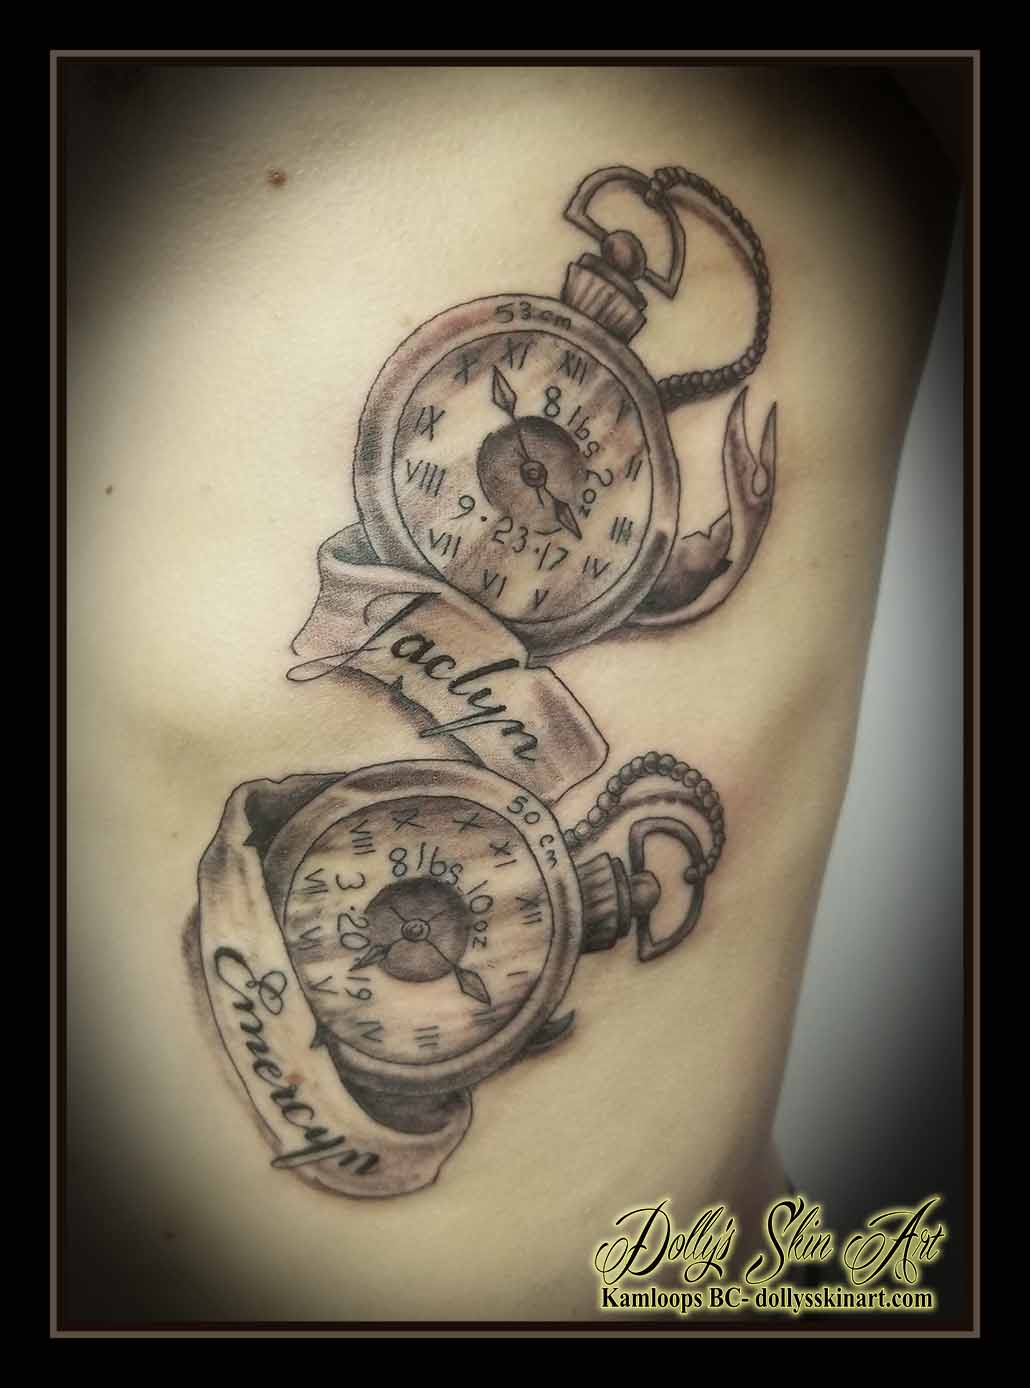 pocketwatch tattoo children birth black and grey banner jaclyn emercyn rib tattoo kamloops dolly's skin art